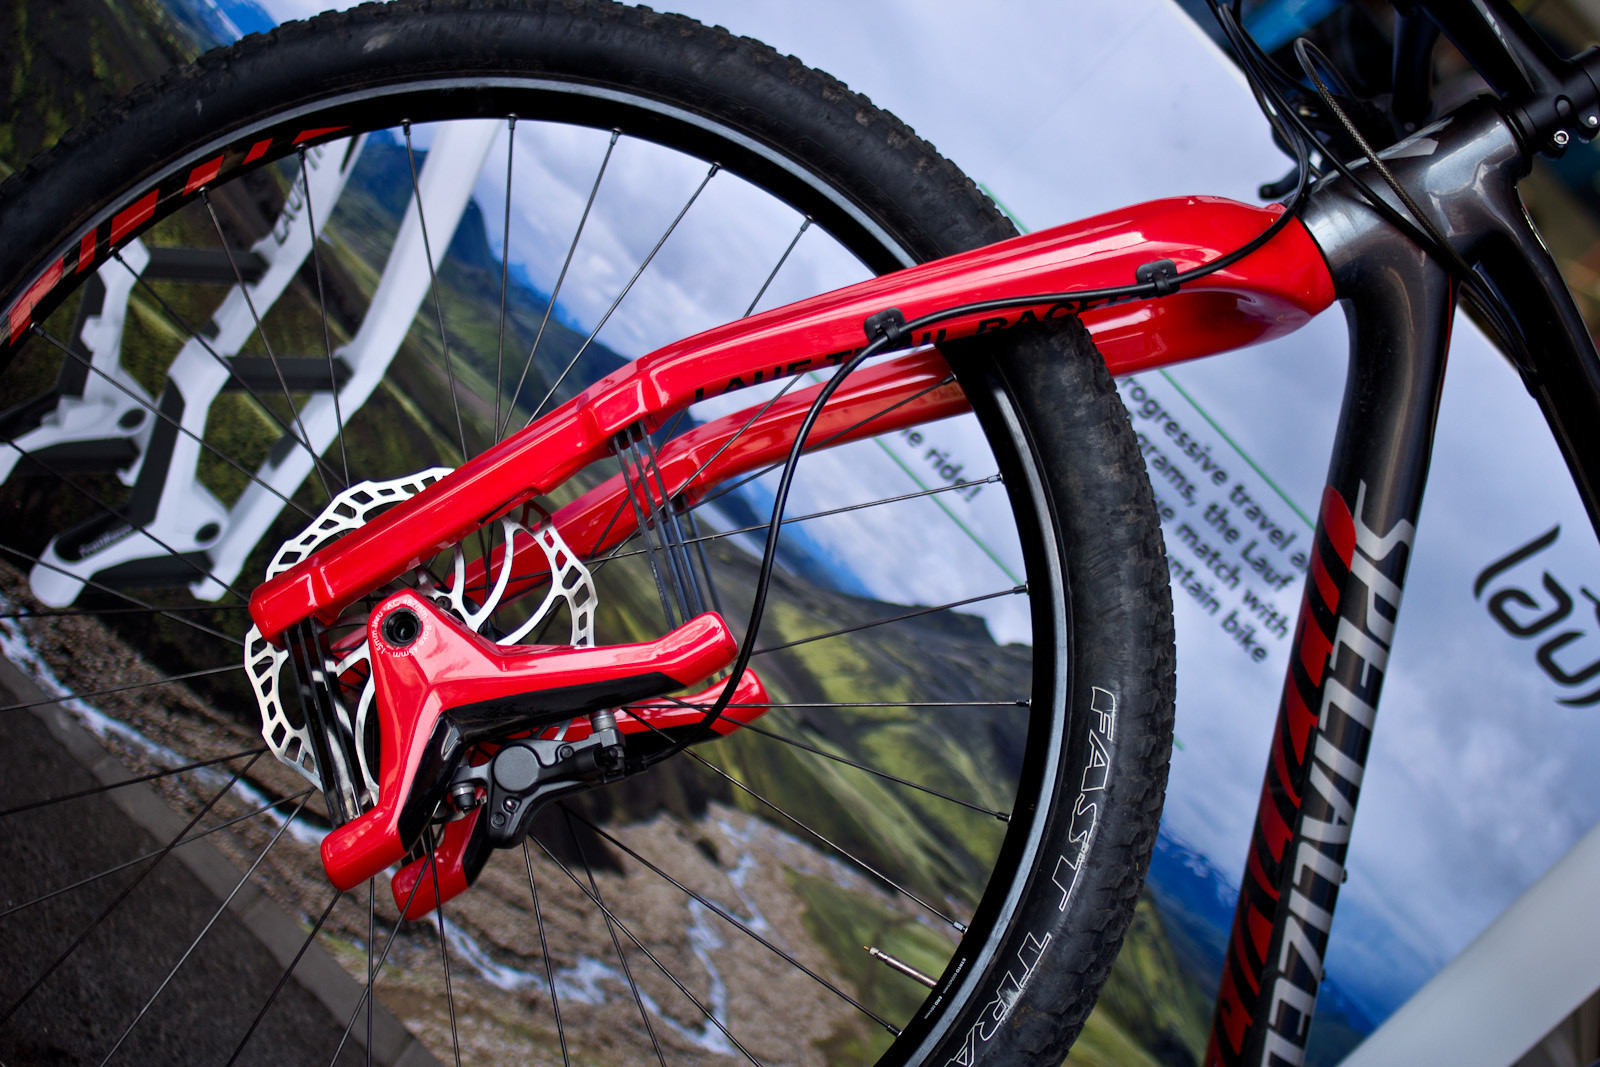 What The?! Wild Looking Lauf Trail Racer Fork - 2014 Mountain Bike Components at Eurobike 2013 - Mountain Biking Pictures - Vital MTB